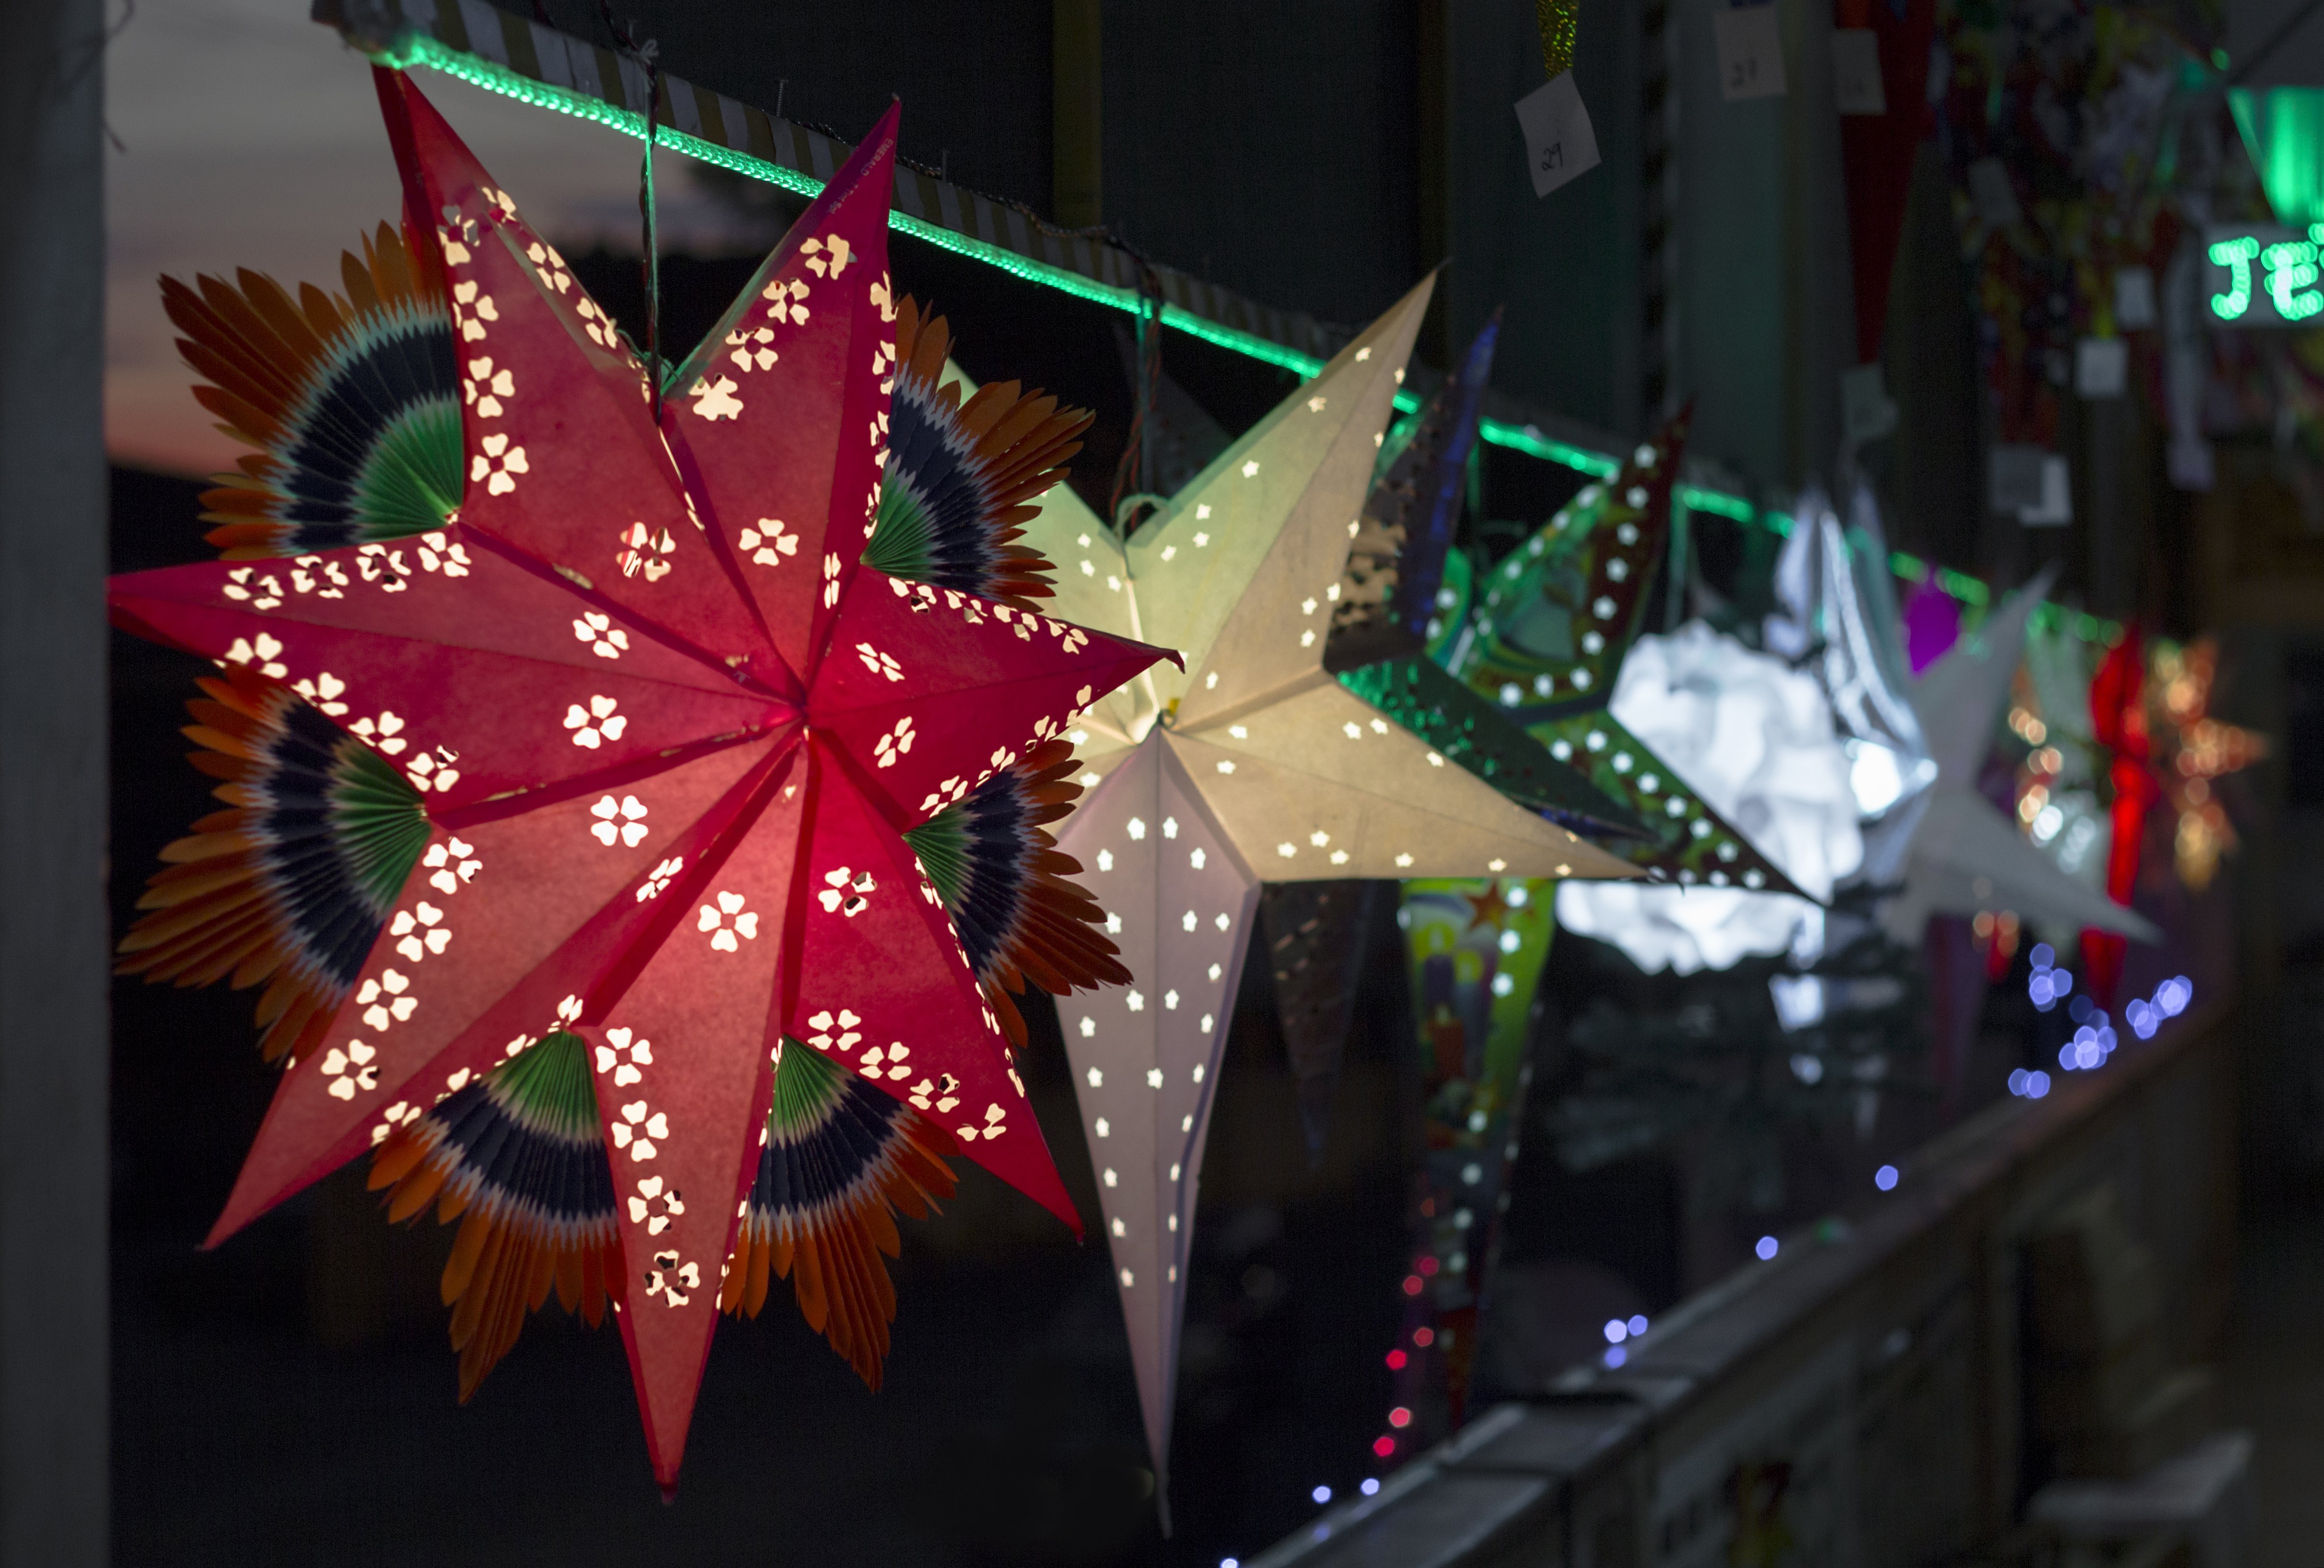 Christmas In India Images.How We Celebrate Christmas In India Kitchn